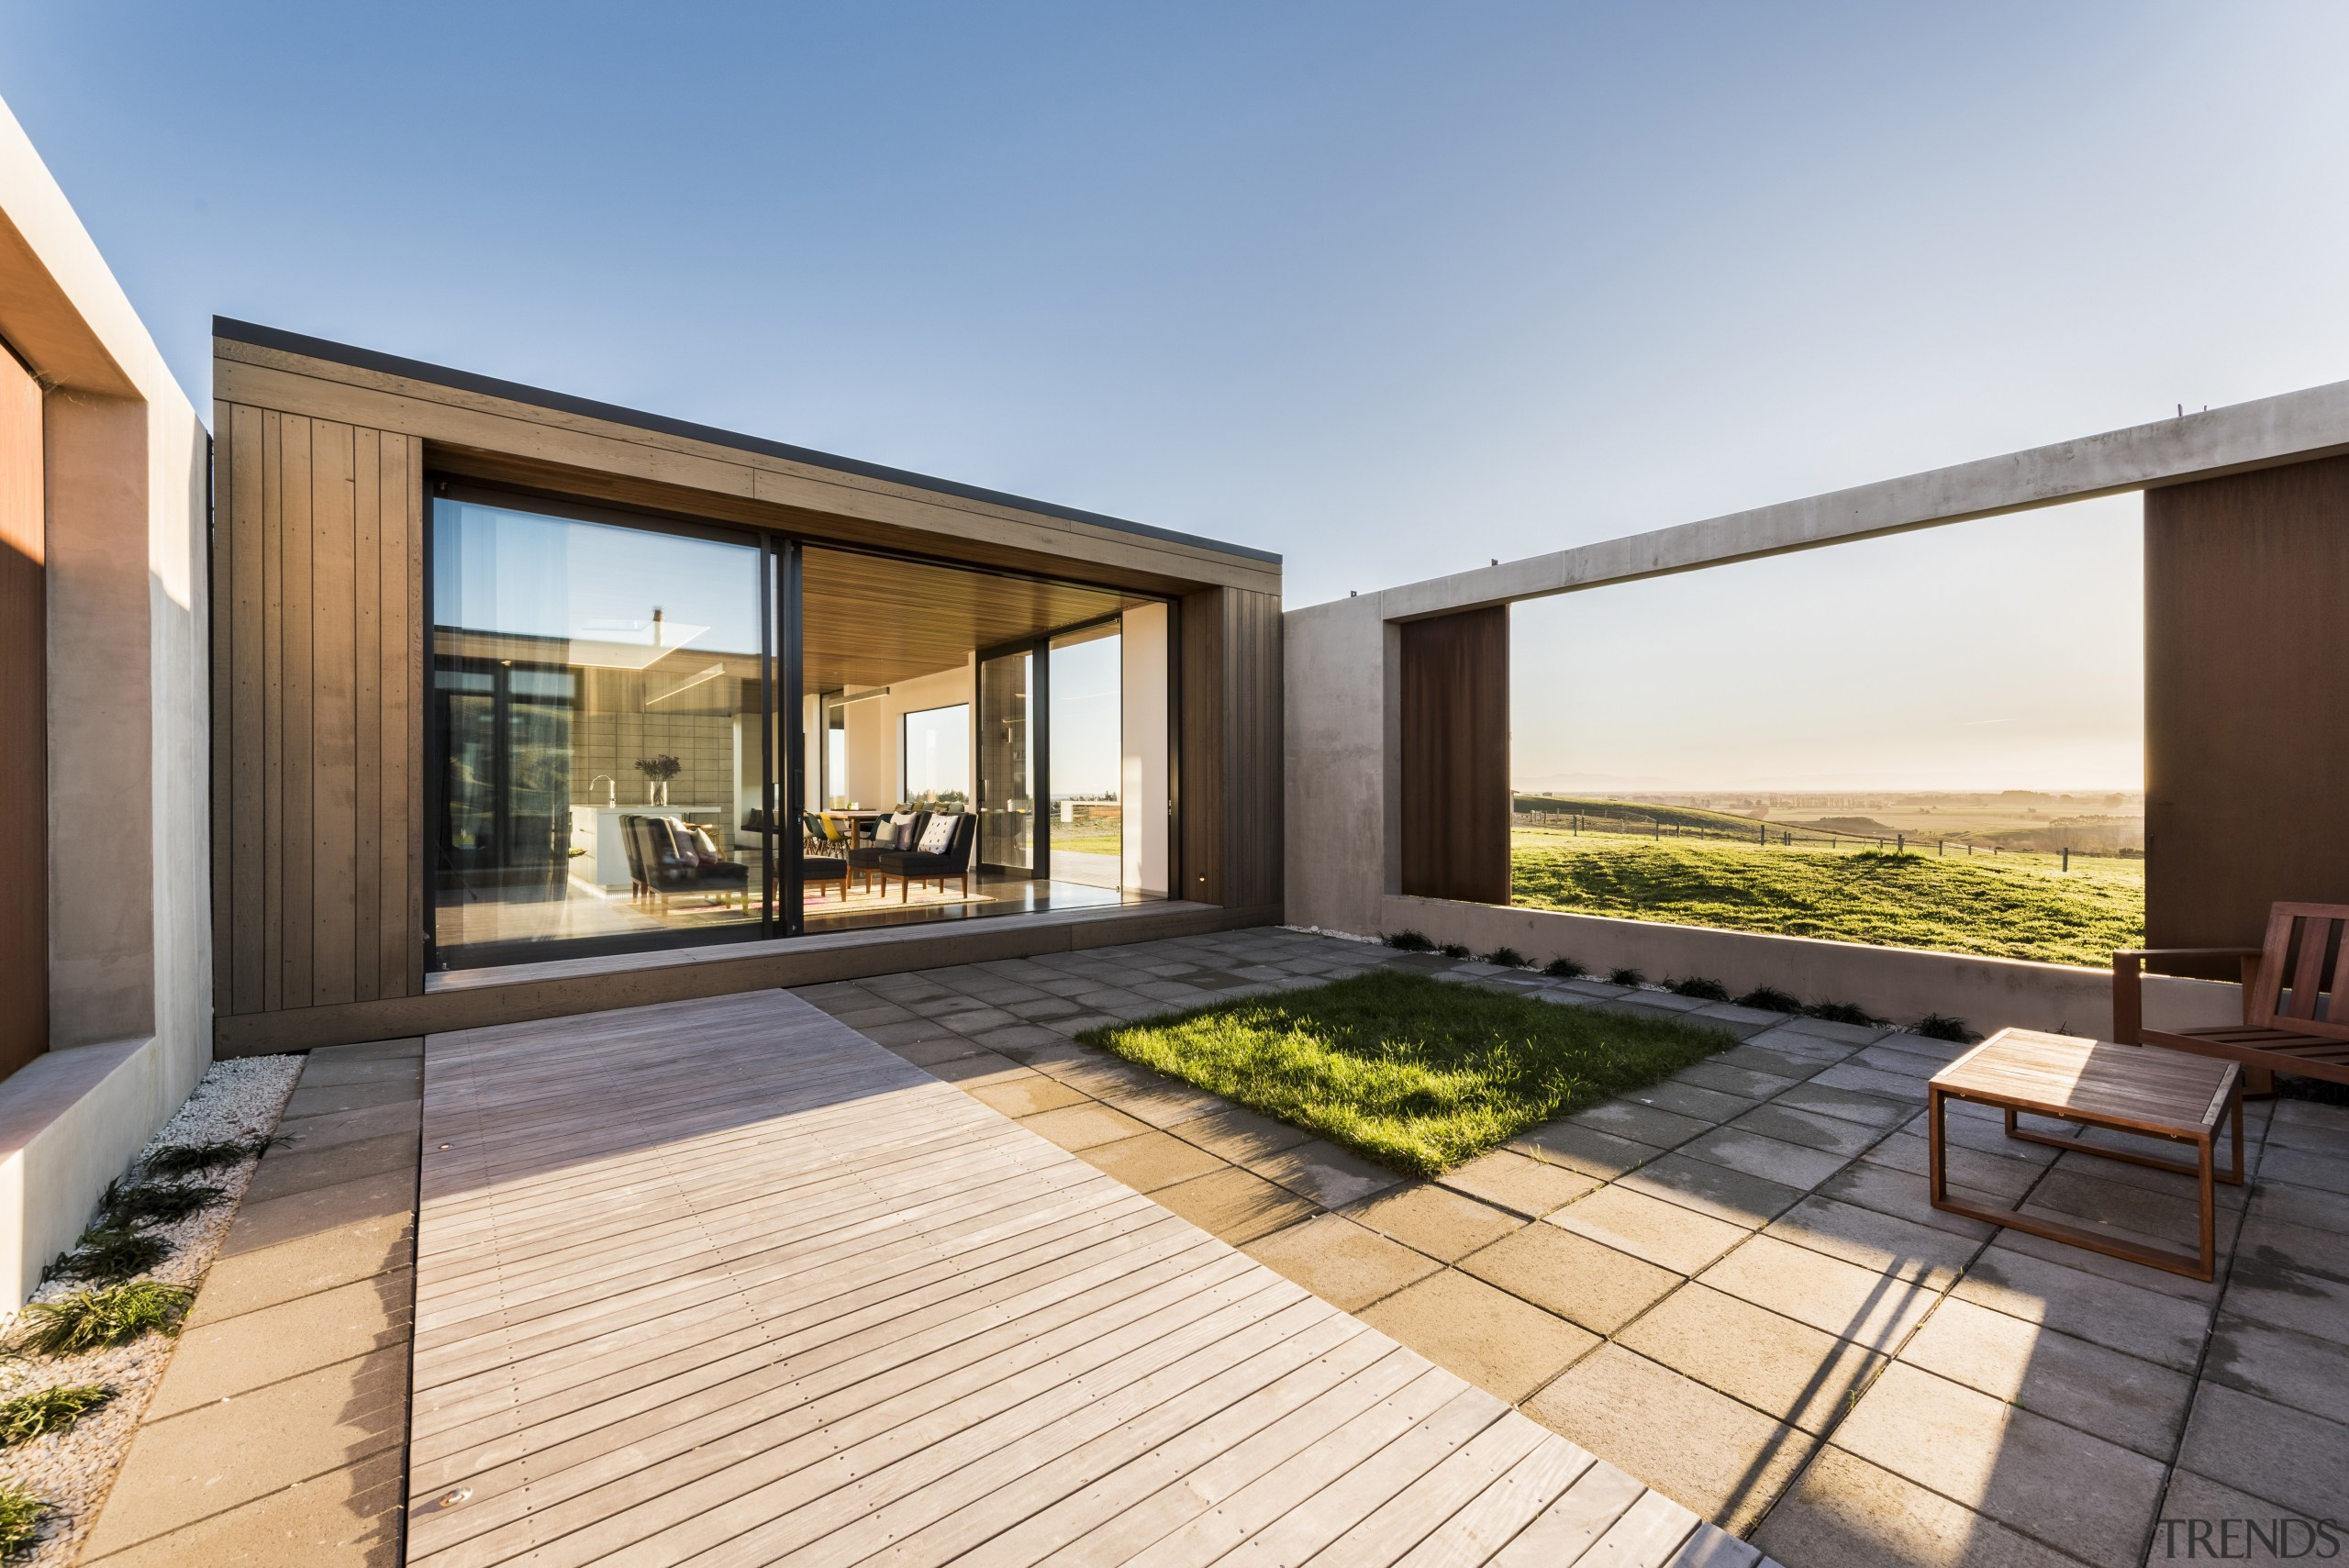 This courtyard in a new rural home can apartment, architecture, estate, home, house, interior design, property, real estate, residential area, window, white